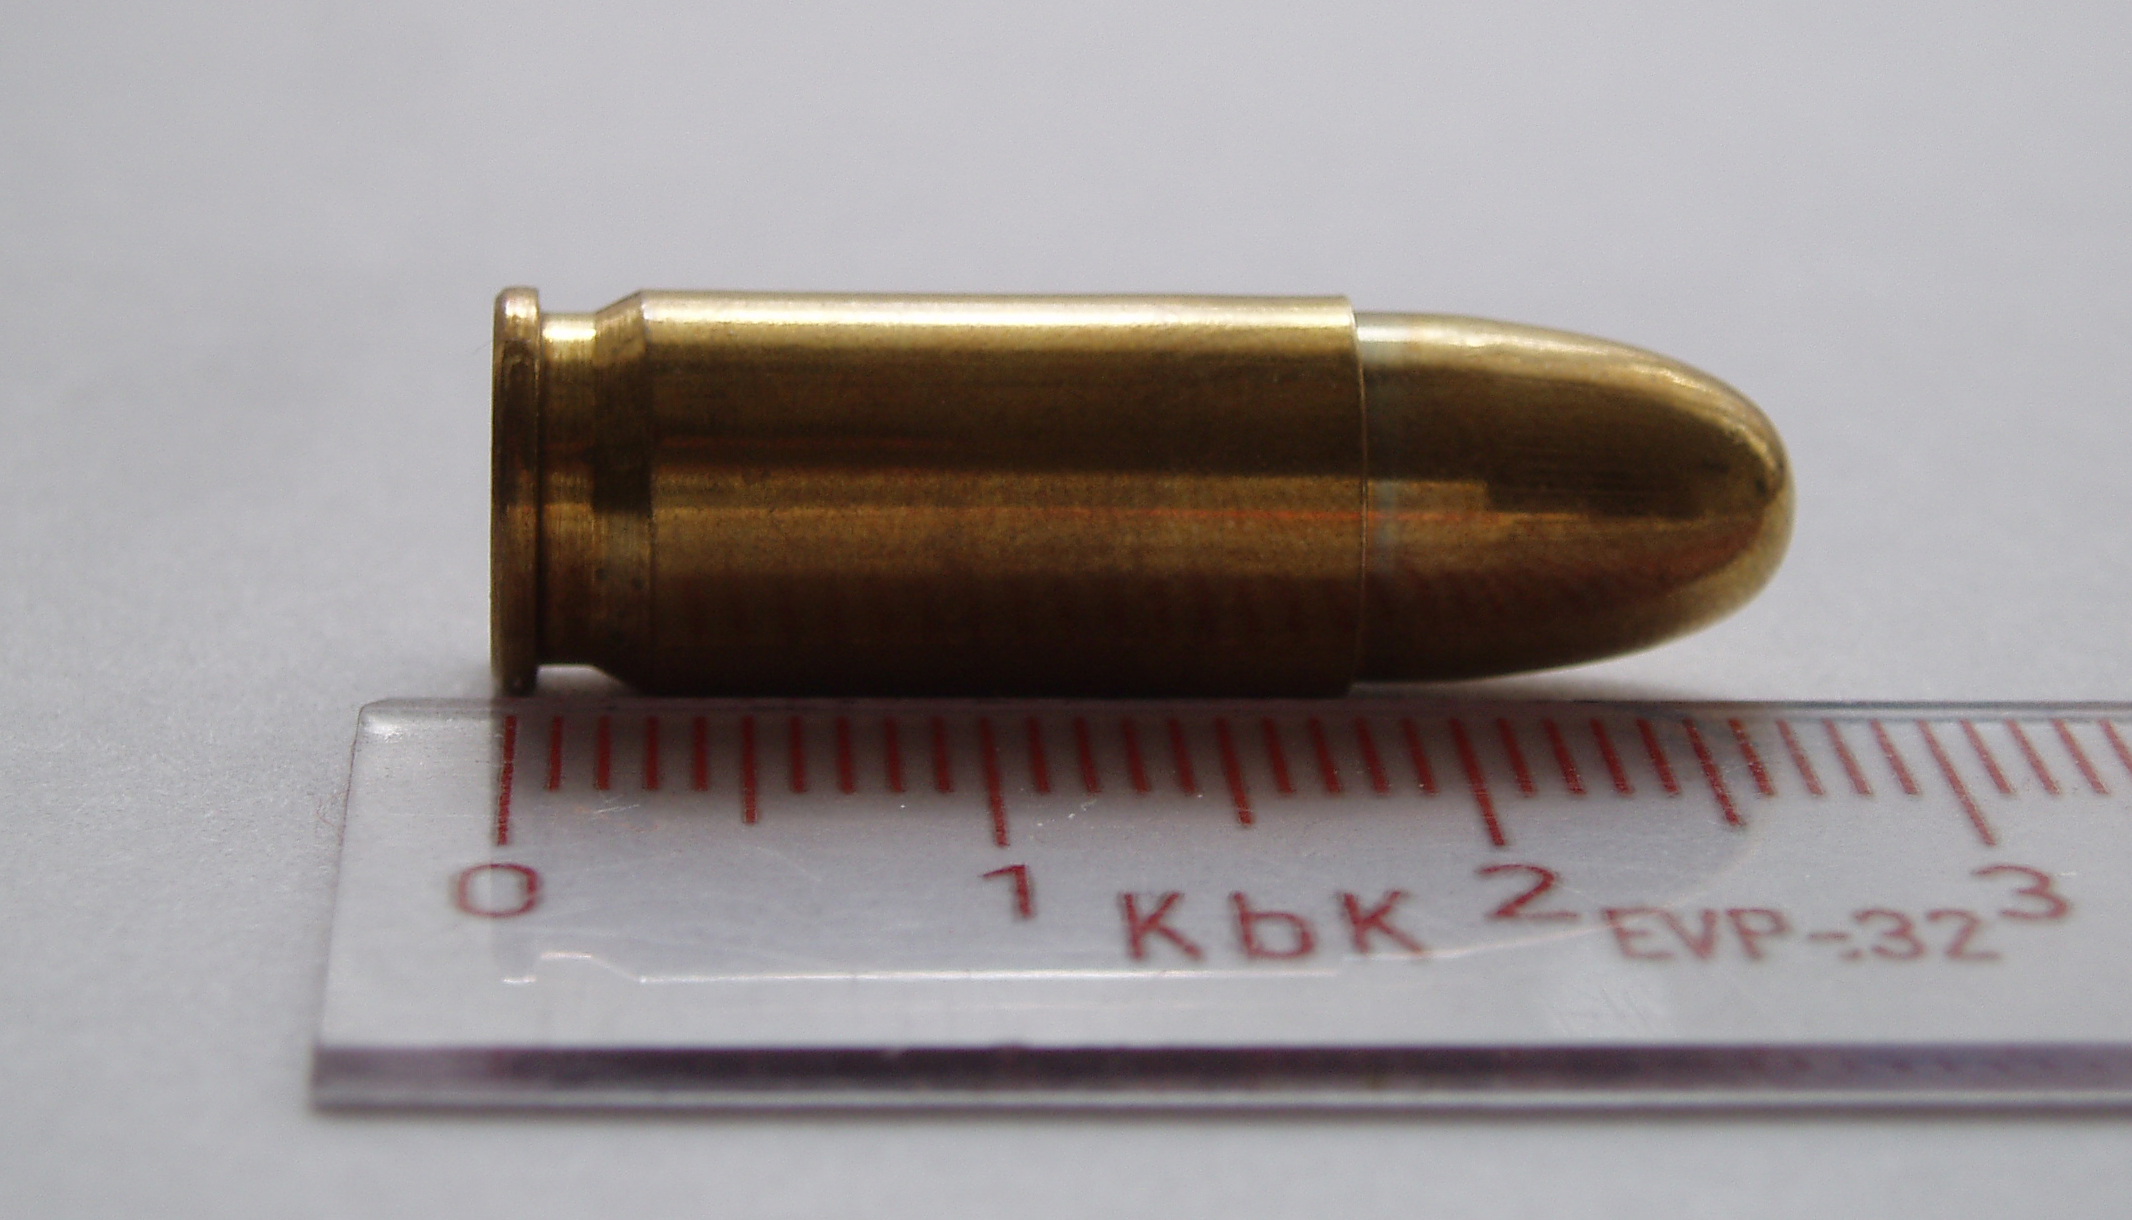 8 mm caliber - Wikipedia